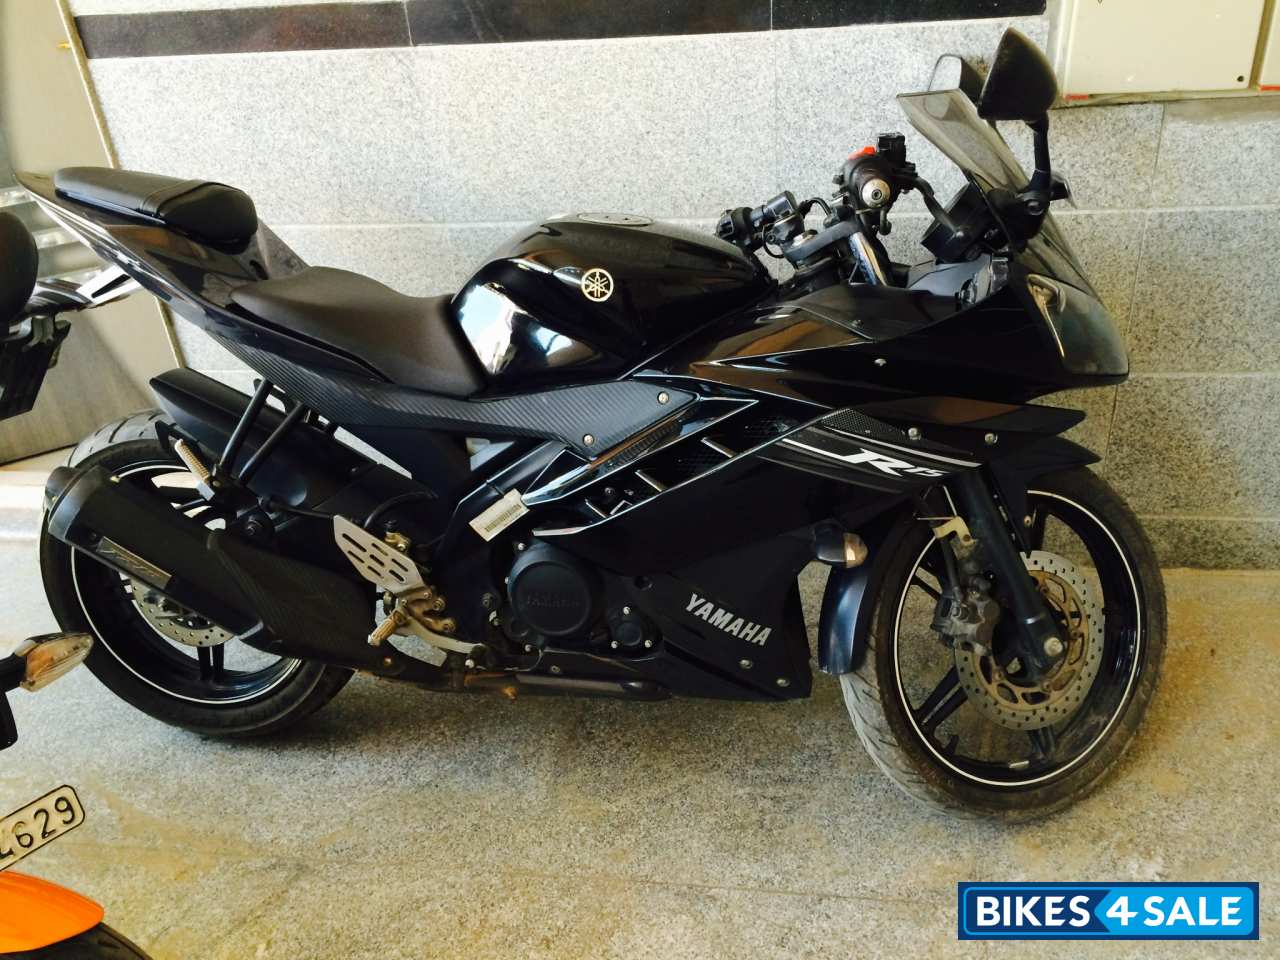 Black Yamaha YZF R15 V2 Pictures - 2 Pictures AvailableYamaha R15 Black